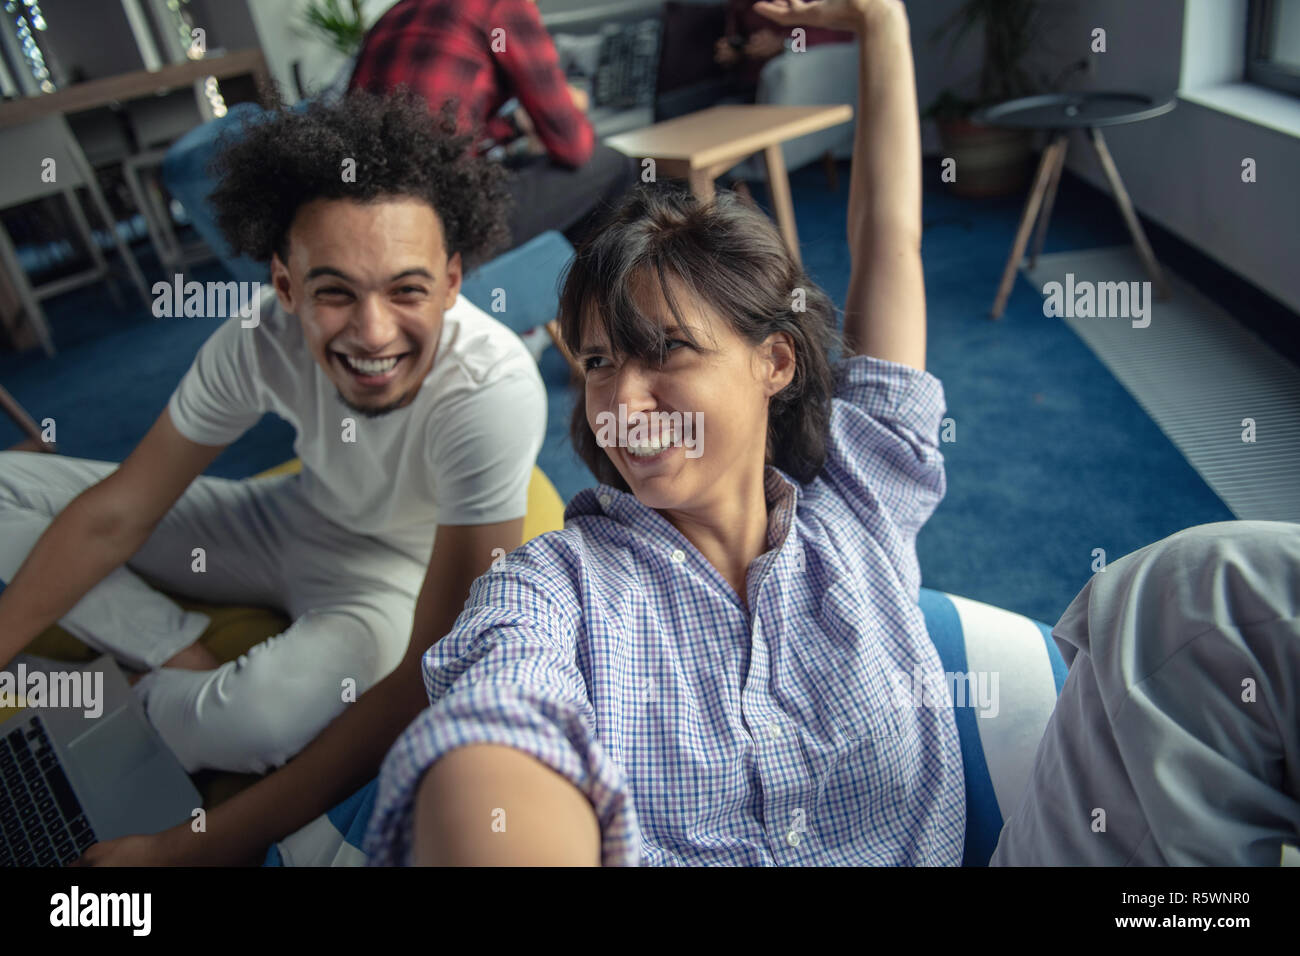 Group of happy smiling businesspeople making selfie and gesturing. Stock Photo